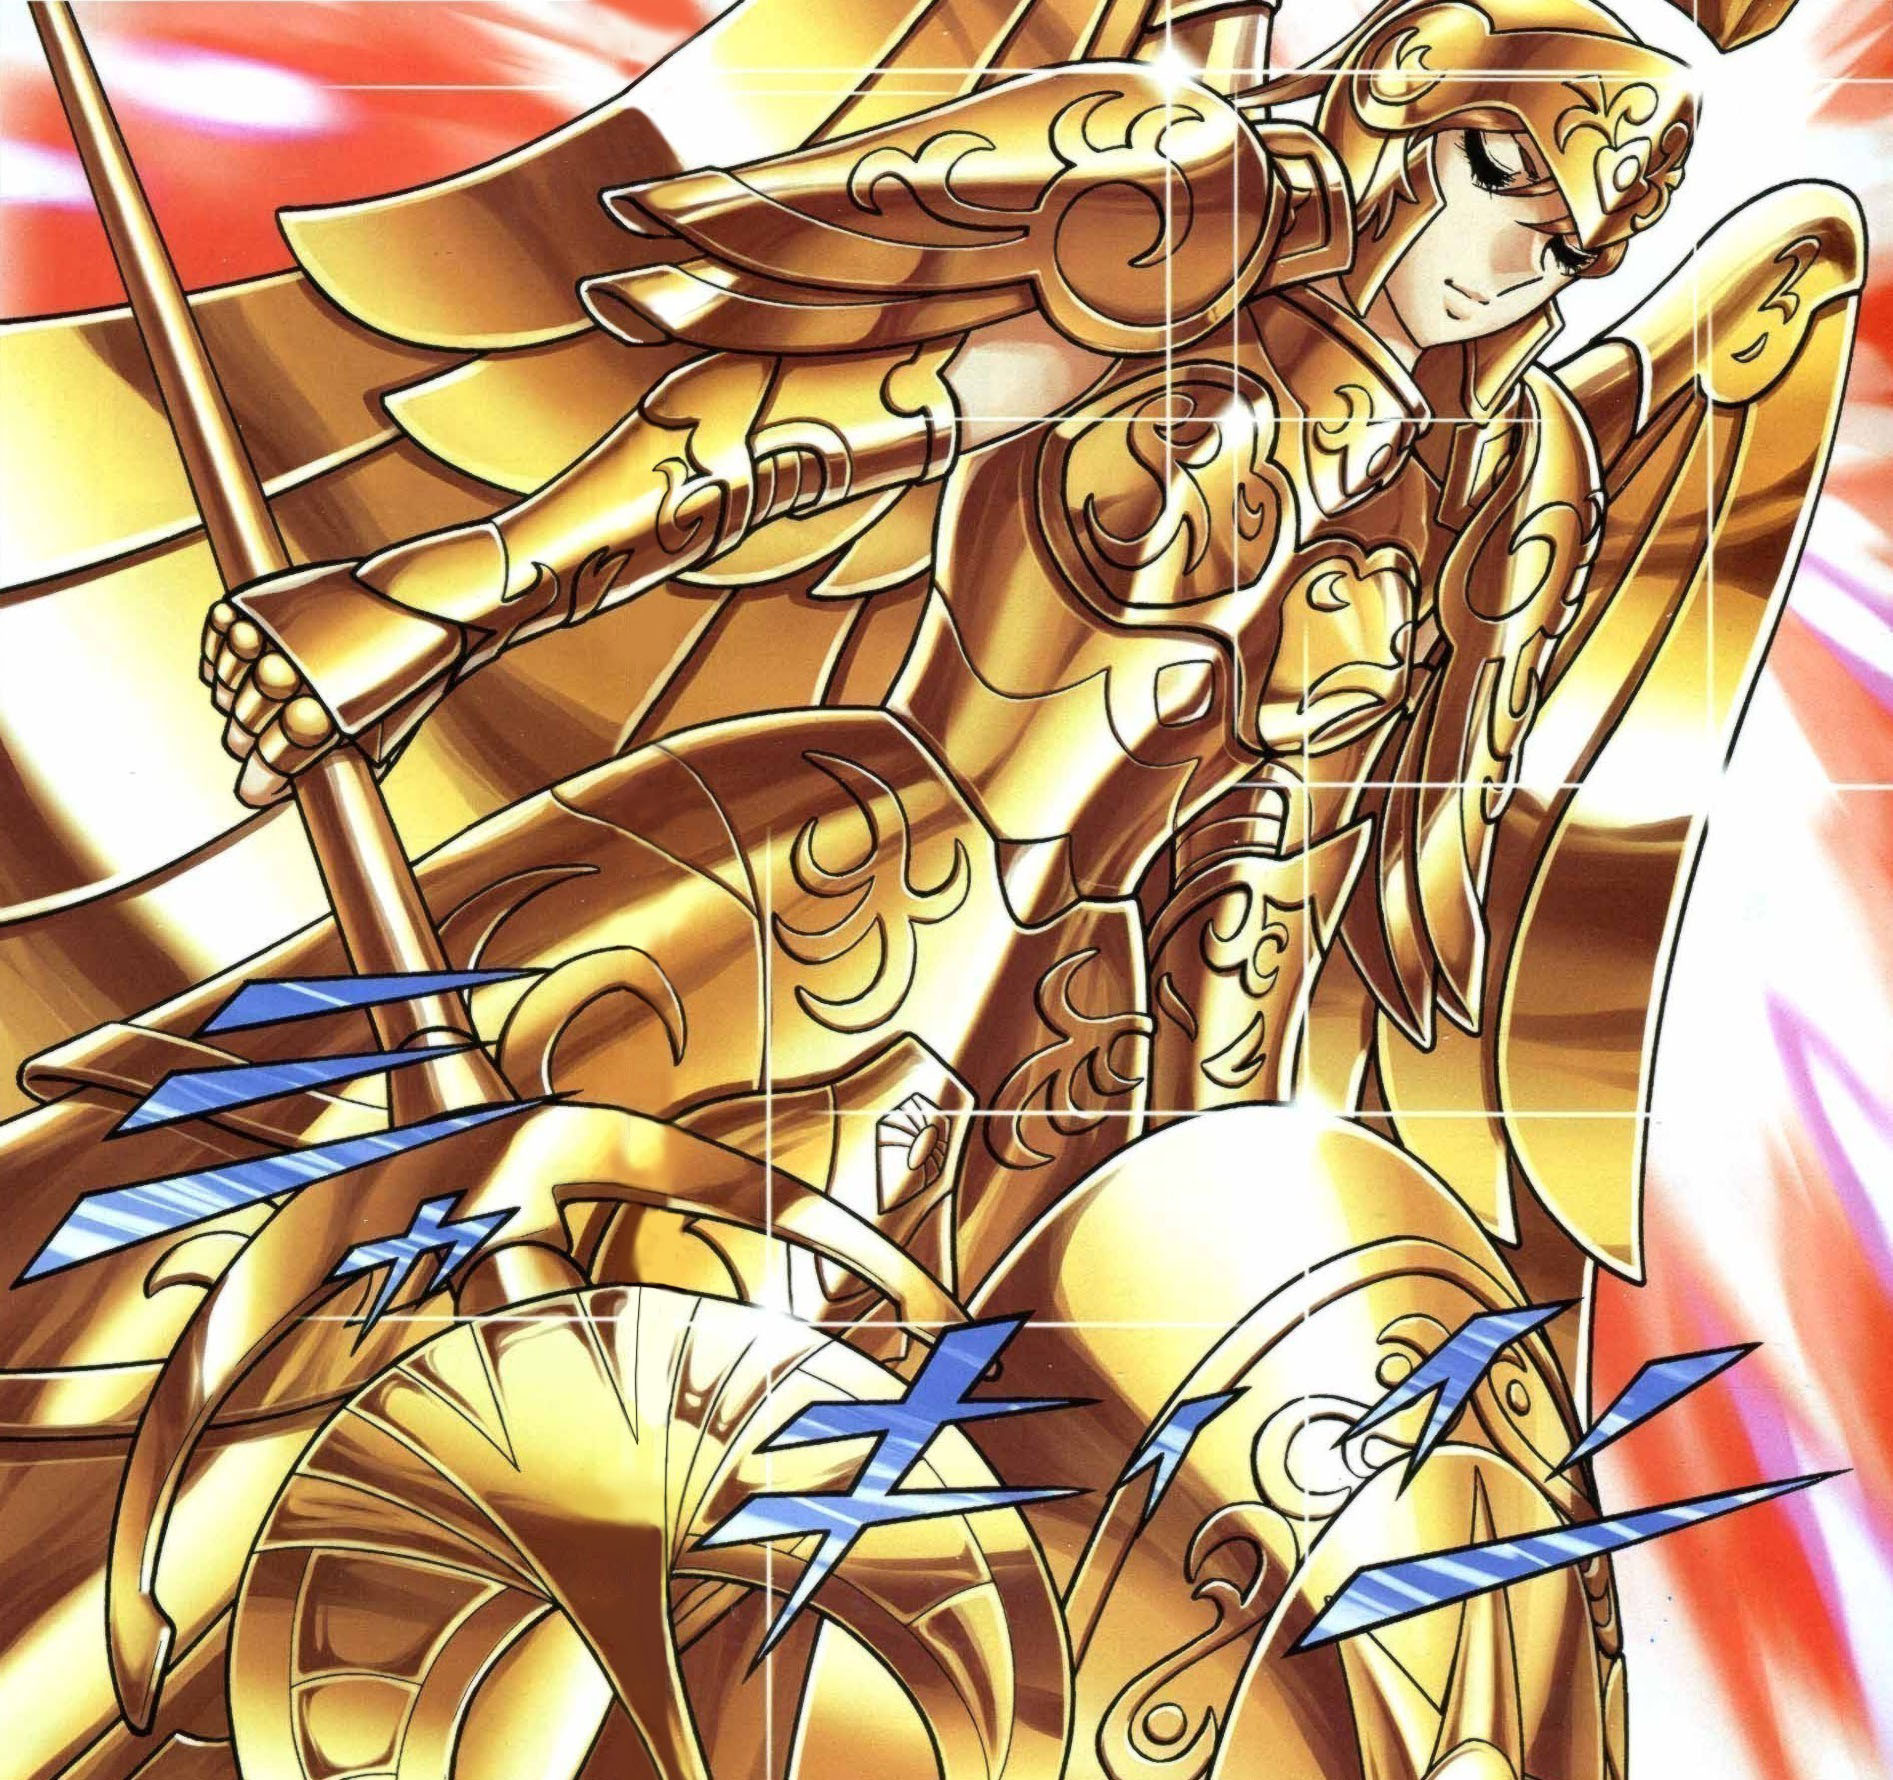 Saint Seiya: Next Dimension Athena's Cloth - Minitokyo